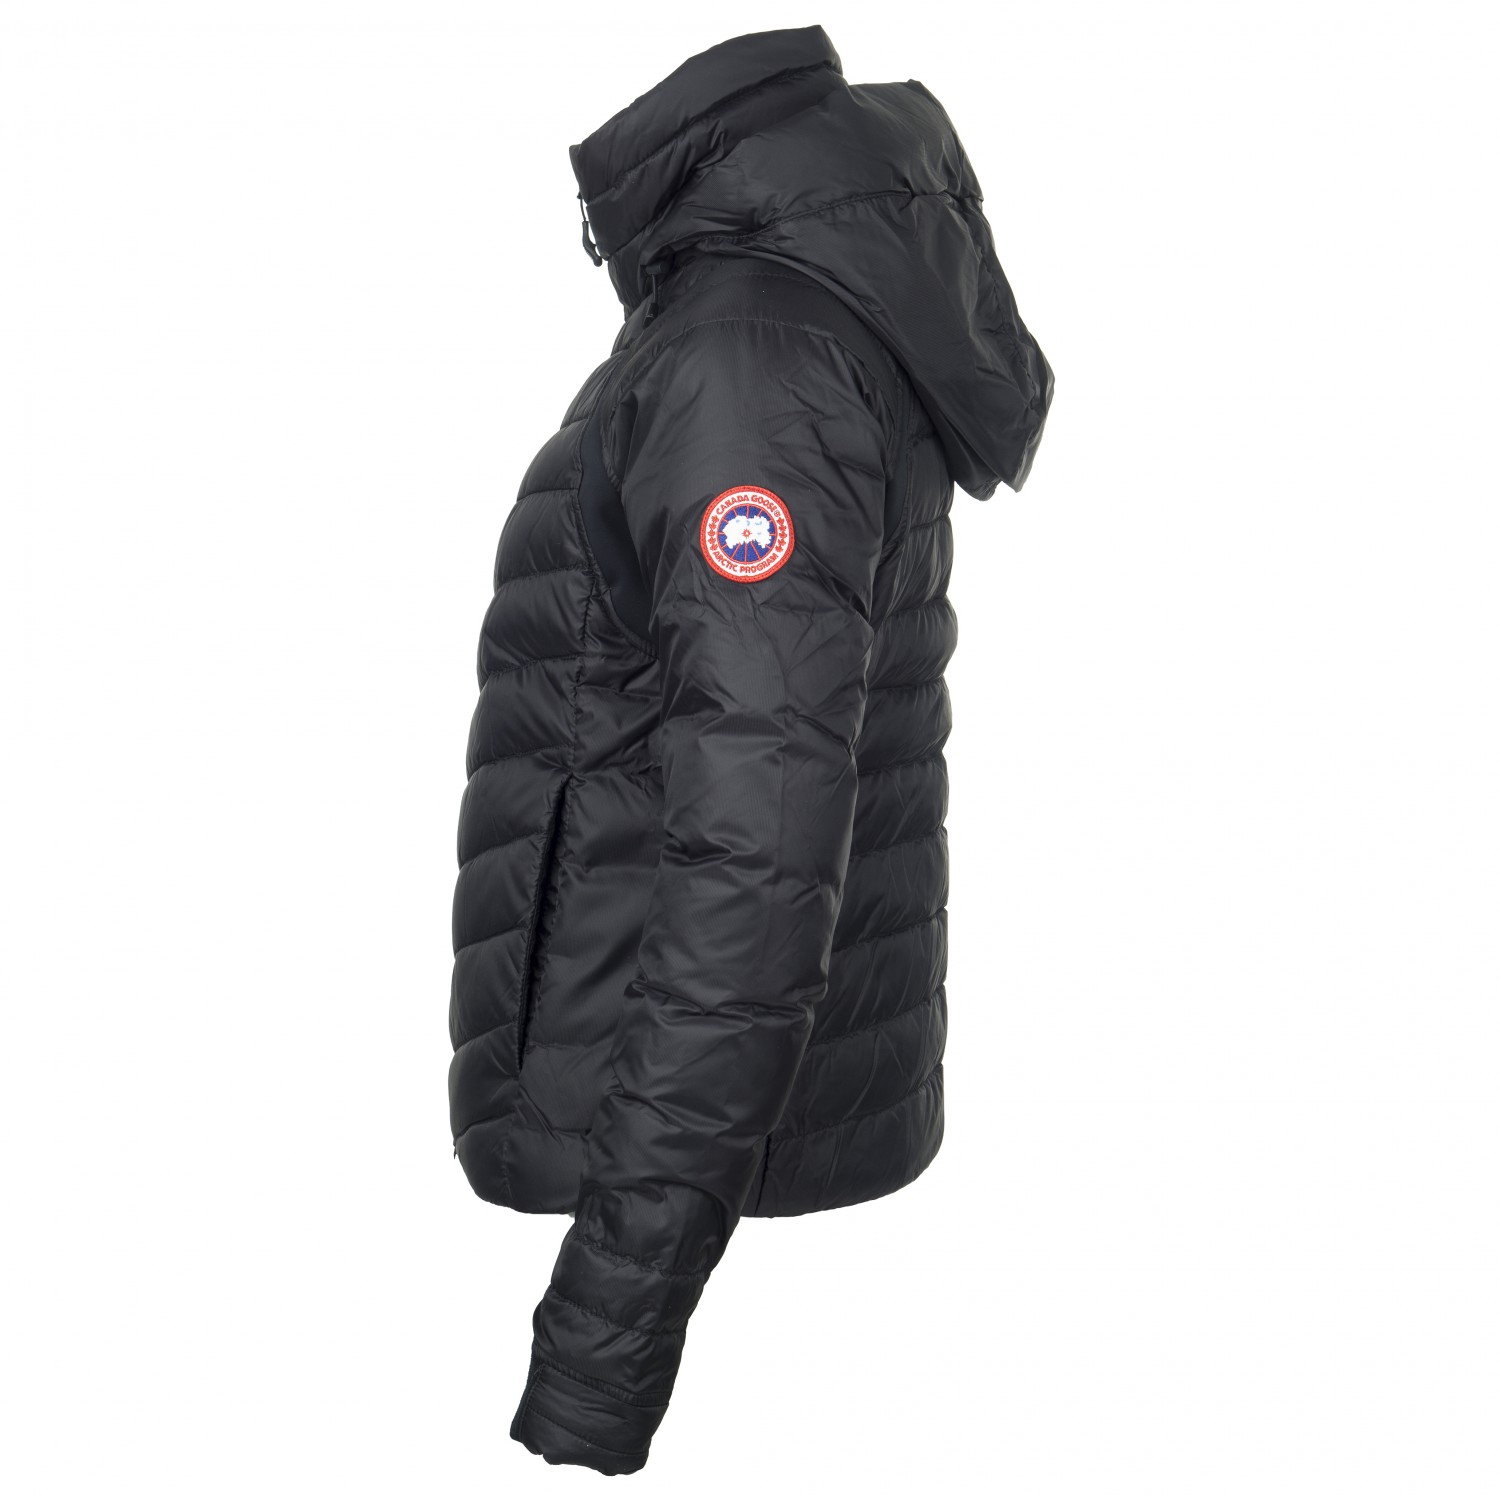 e26c1d4832503 Canada Goose Hybridge Base Jacket - Down jacket Women's | Free EU ...